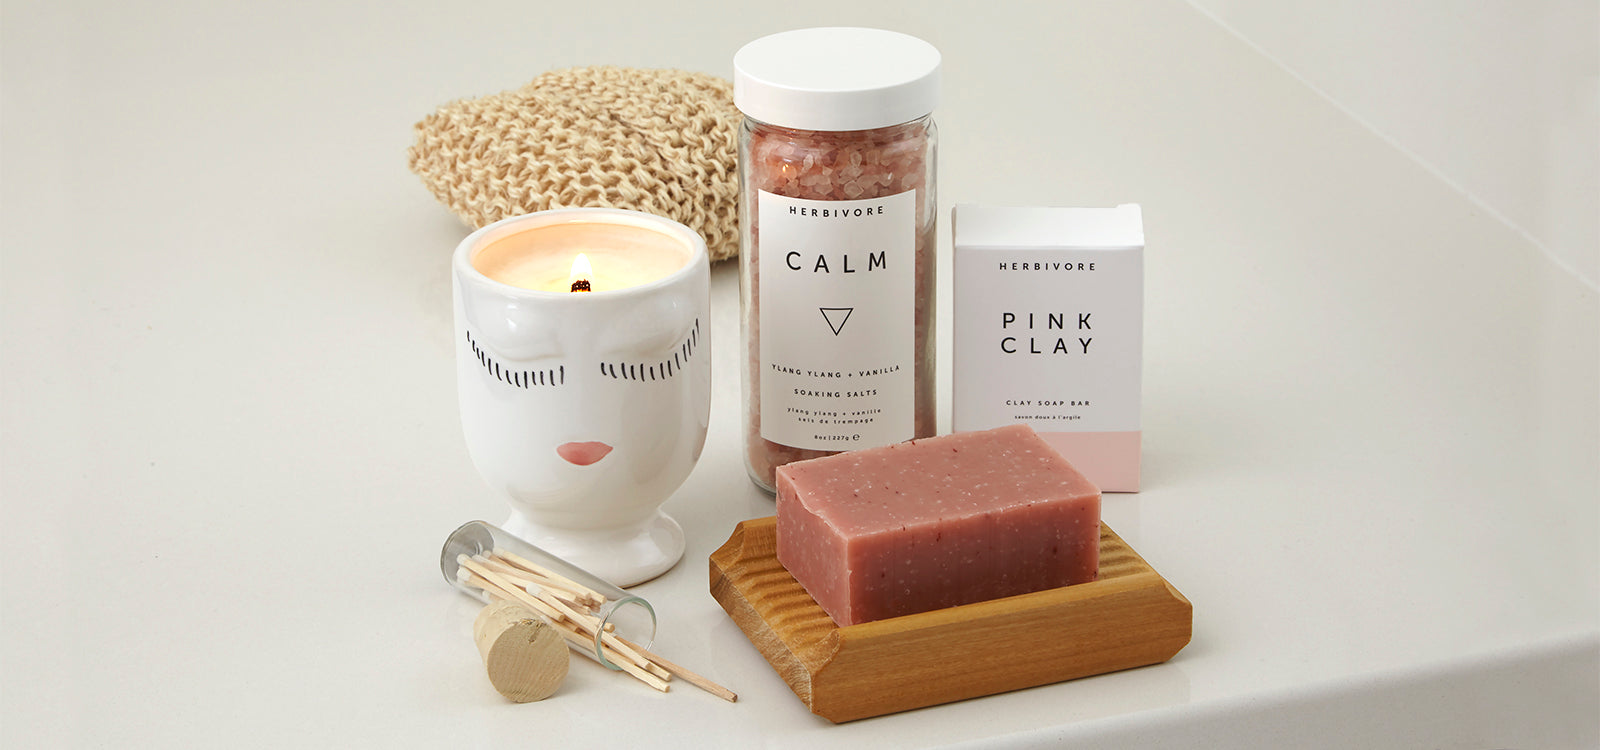 Herbivore Calm Experience Gift